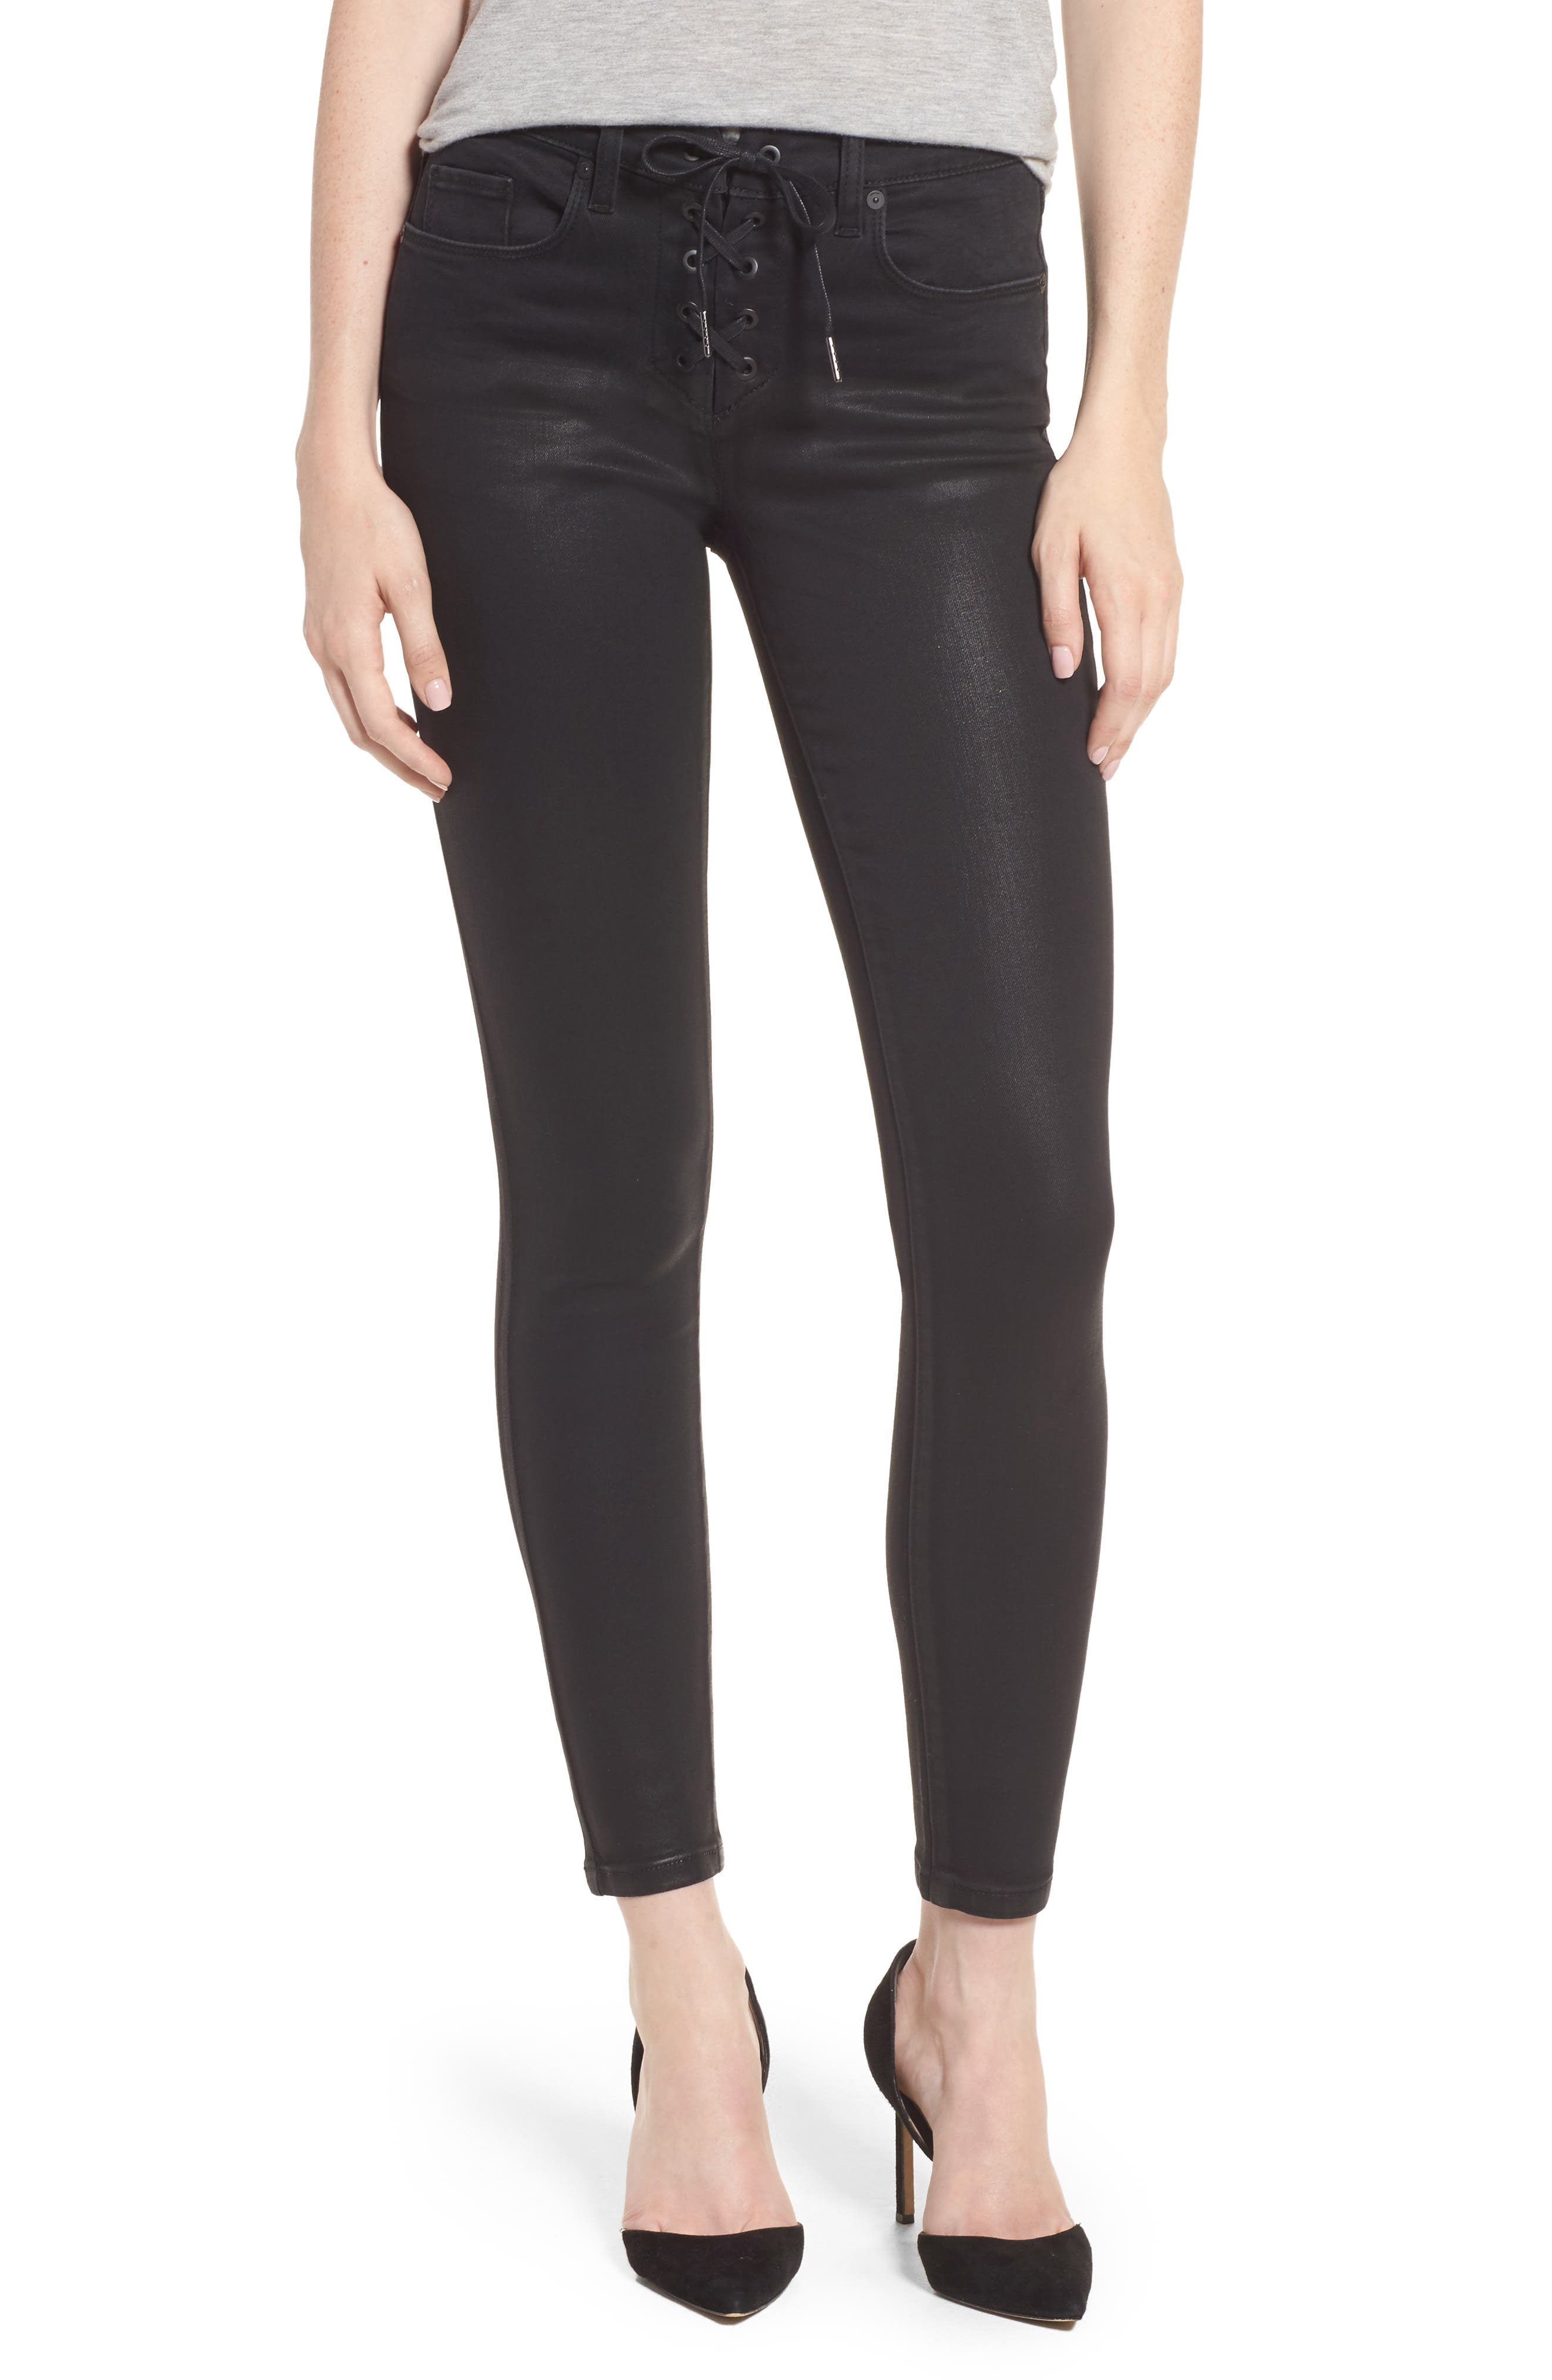 Alternate Image 1 Selected - BLANKNYC Black Jack Lace-Up Skinny Jeans (Smoked Out)